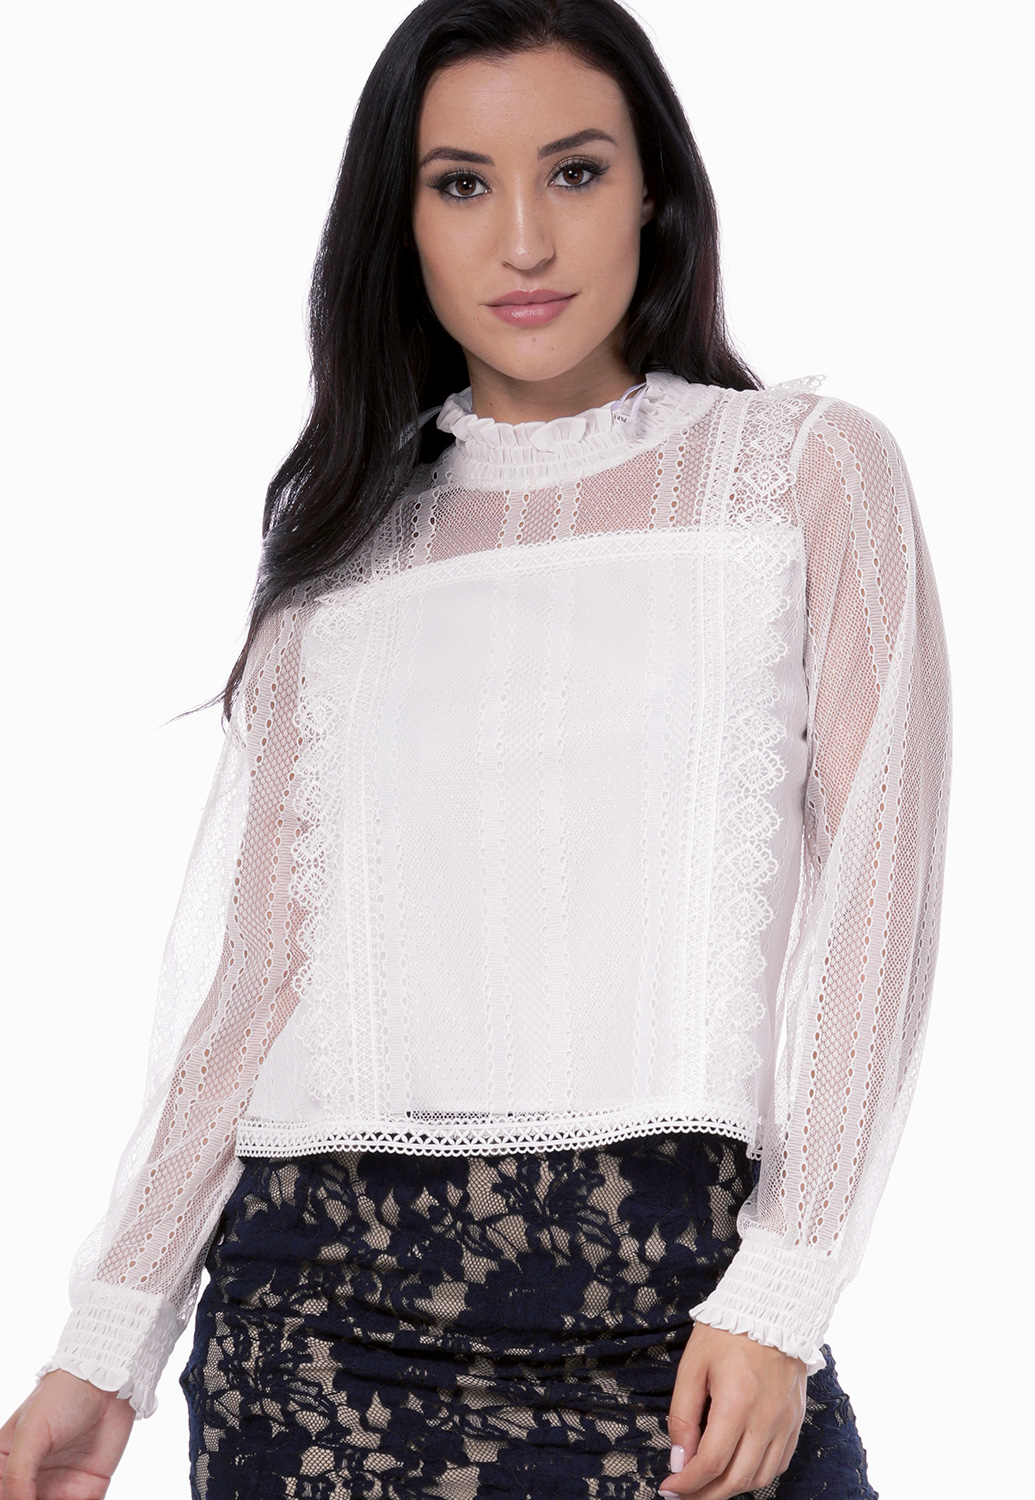 Sheer Crochet Trim Dressy Top